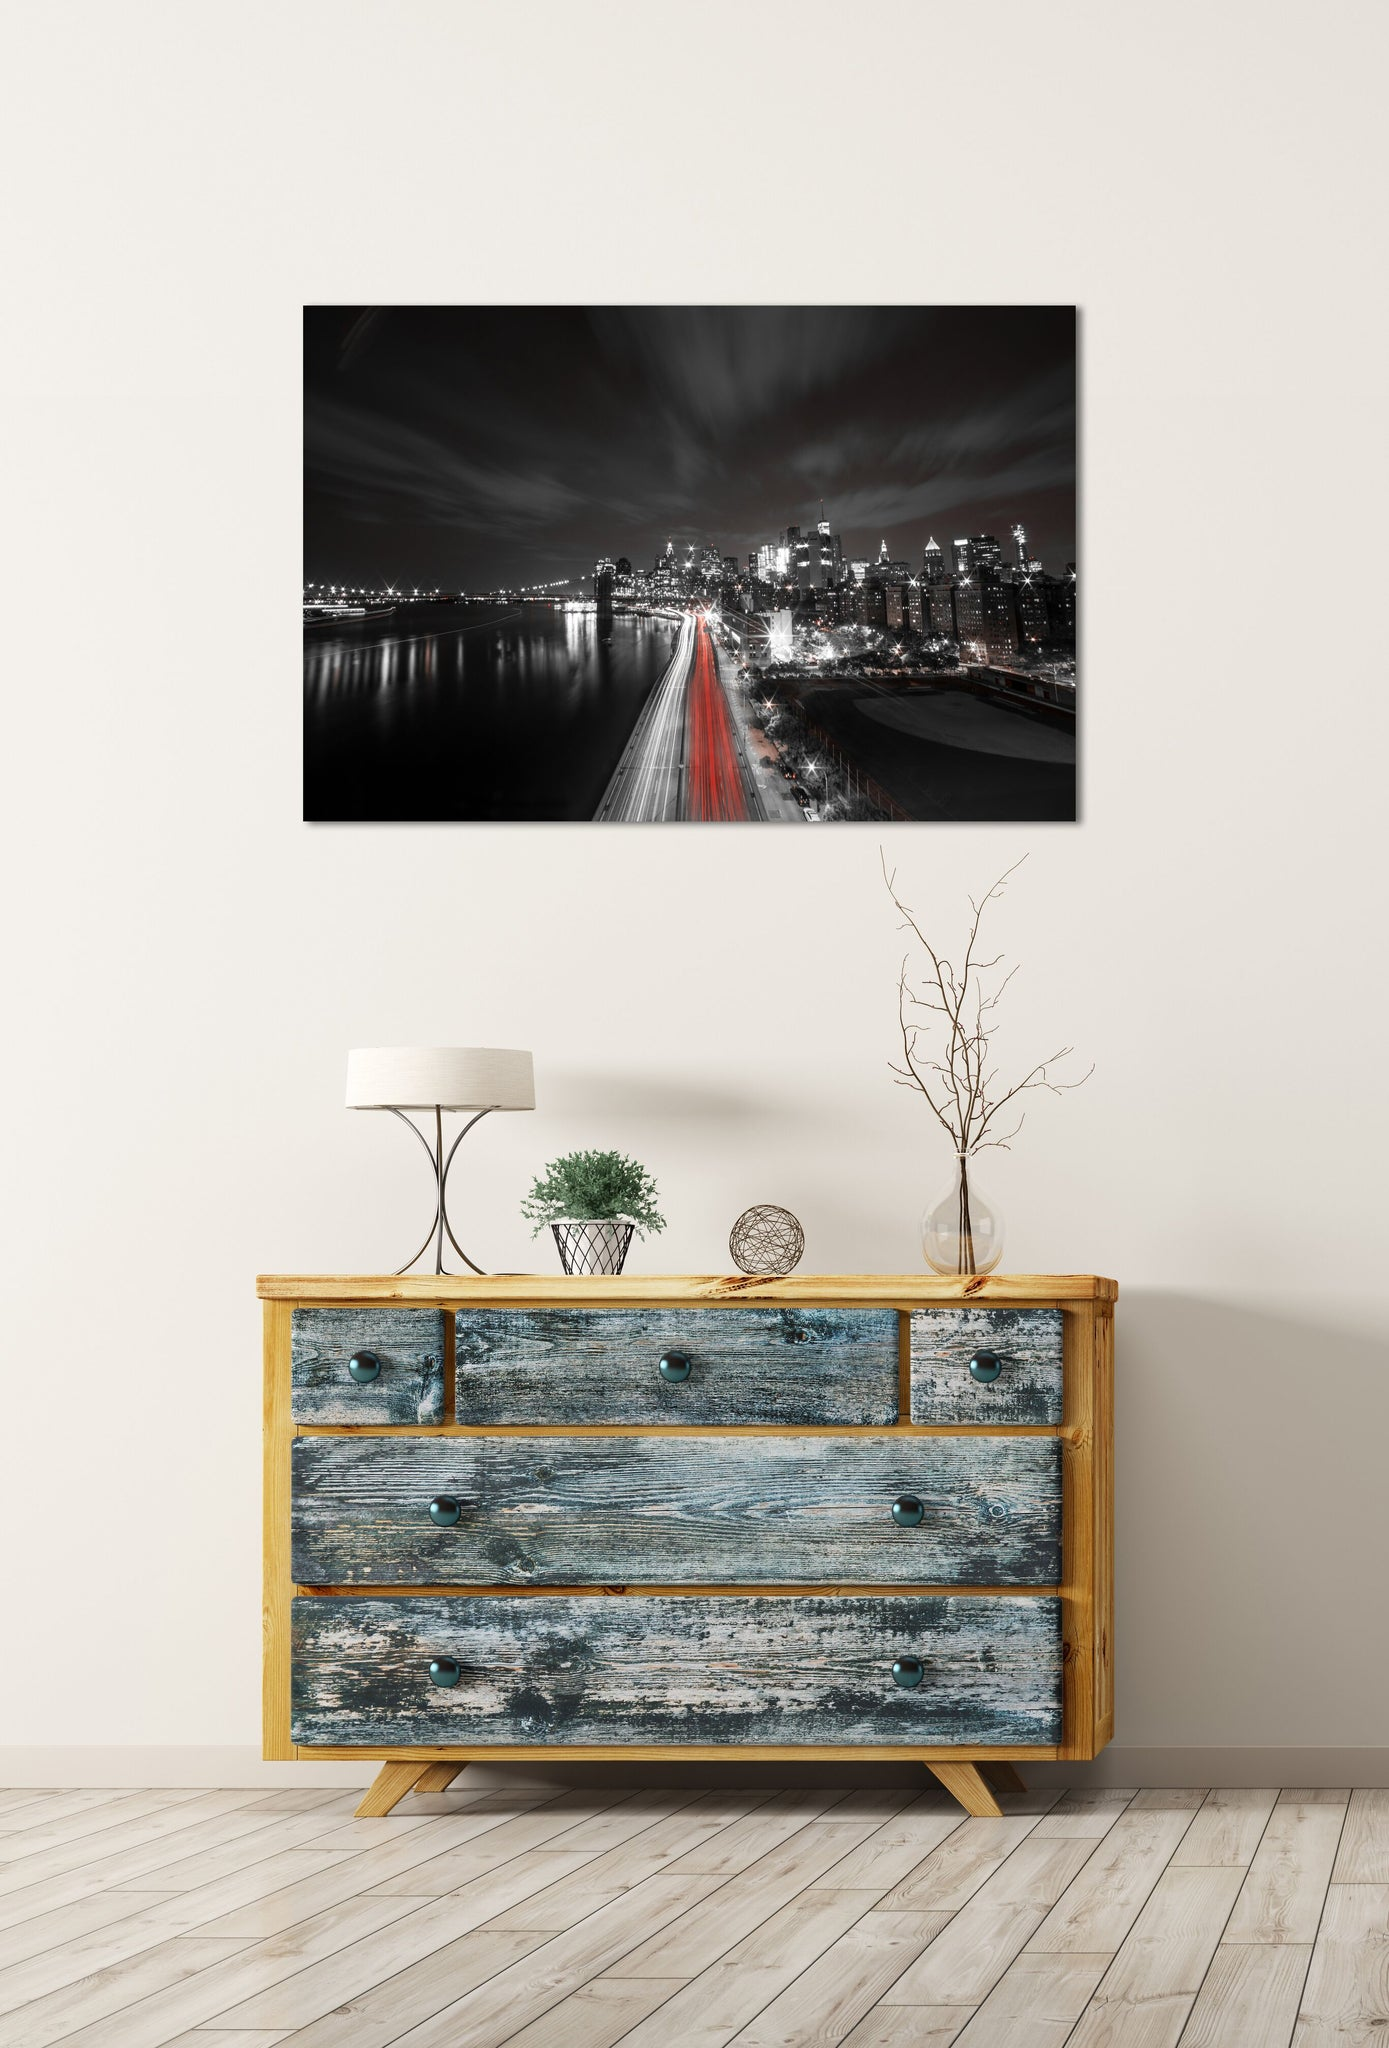 New York City Skyline Downtown Manhattan Skyscraper Black and White Canvas Metal Print Wall Art Picture Home Decor Bedroom Livingroom Poster